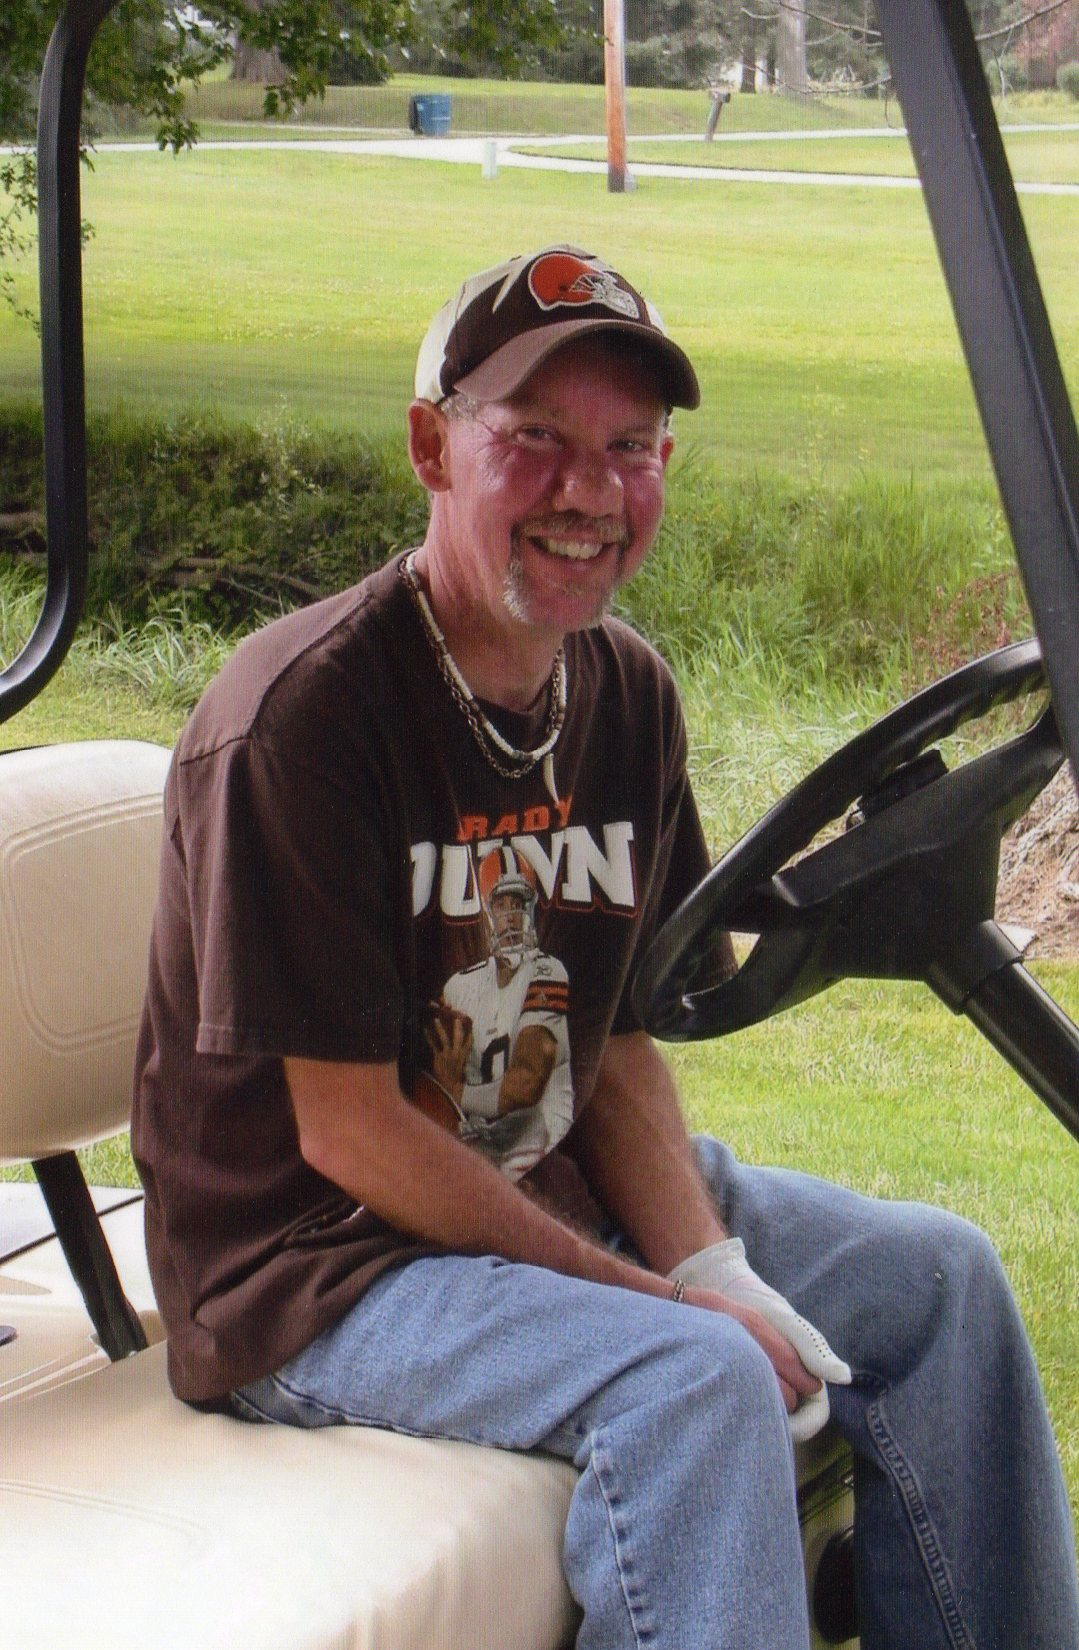 robert bob l bittigar 56 of fremont oh passed away from complications due to a stroke with his family by his side on friday april 28